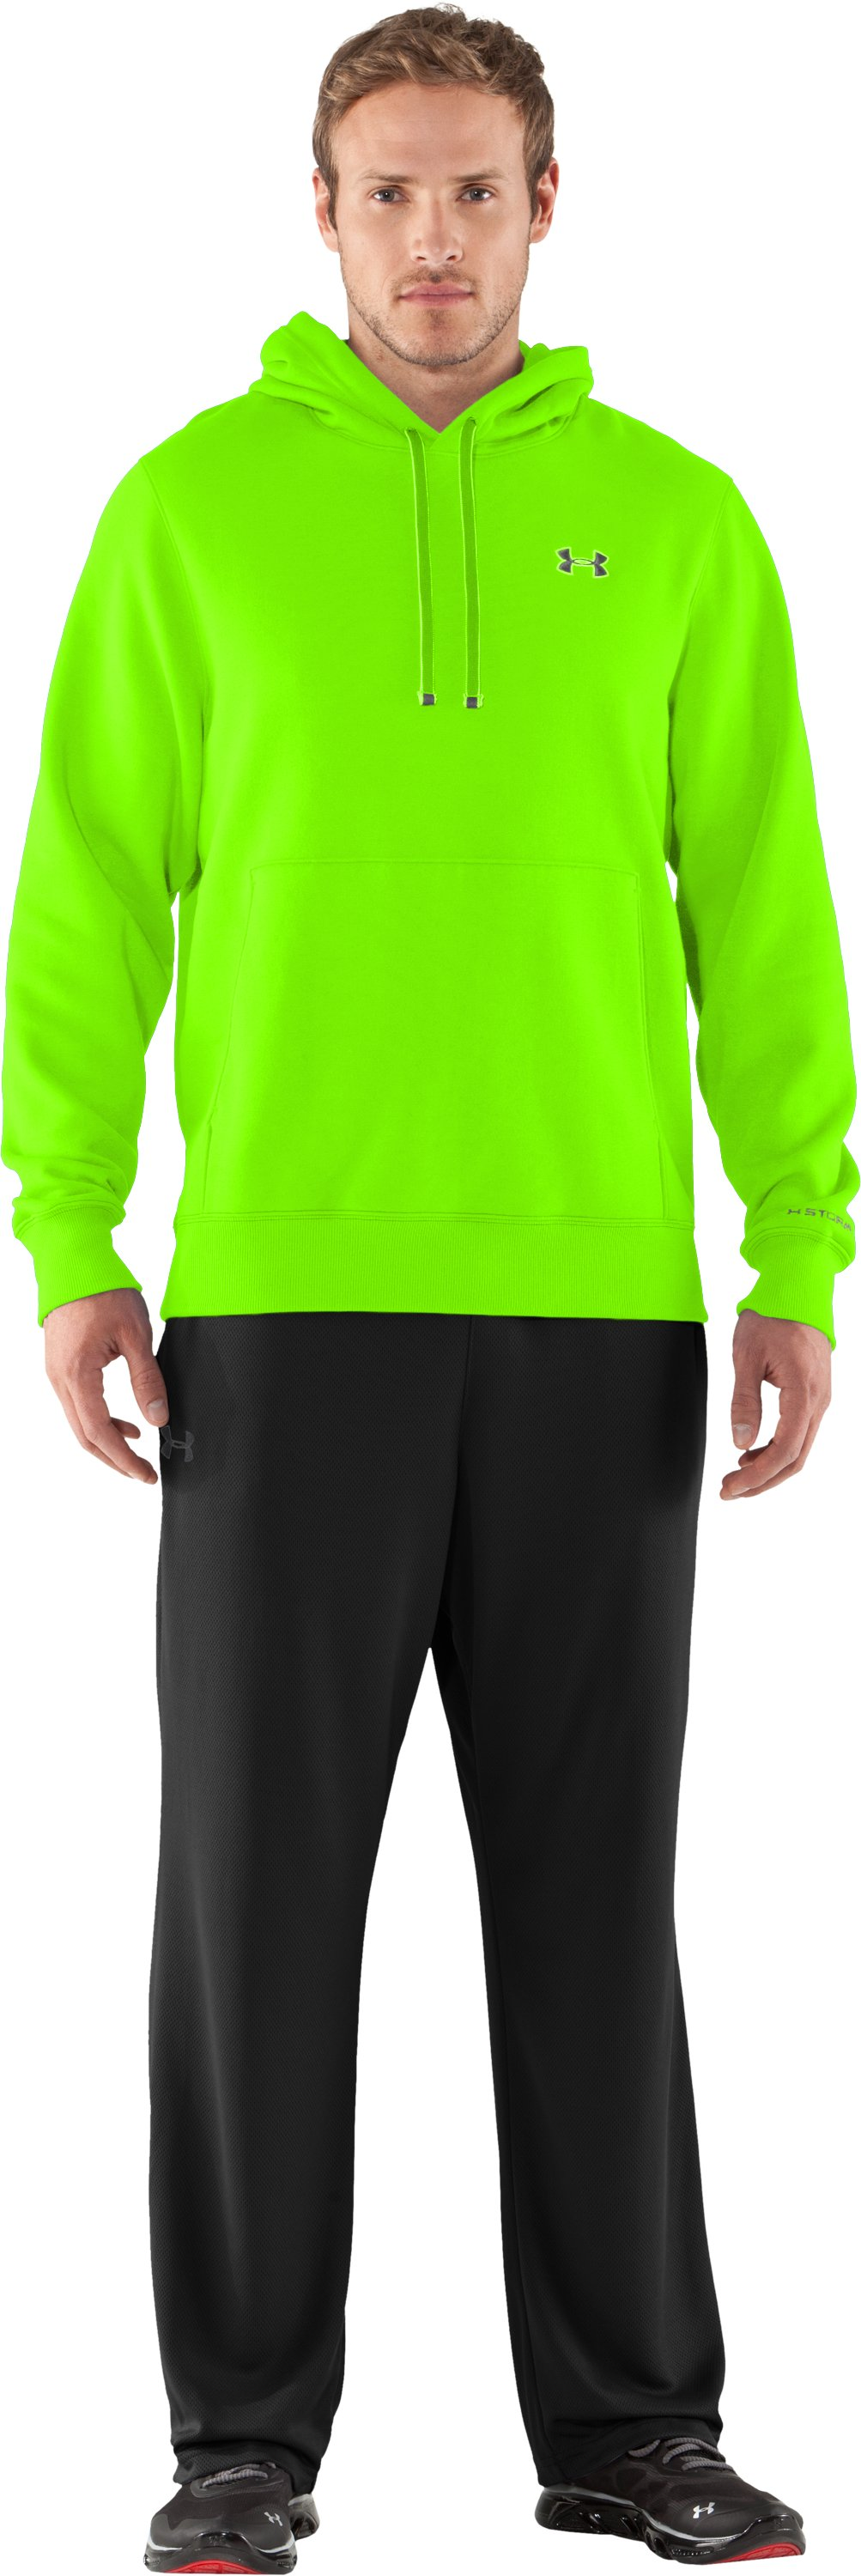 Men's Charged Cotton® Storm Transit Hoodie, HYPER GREEN, Front